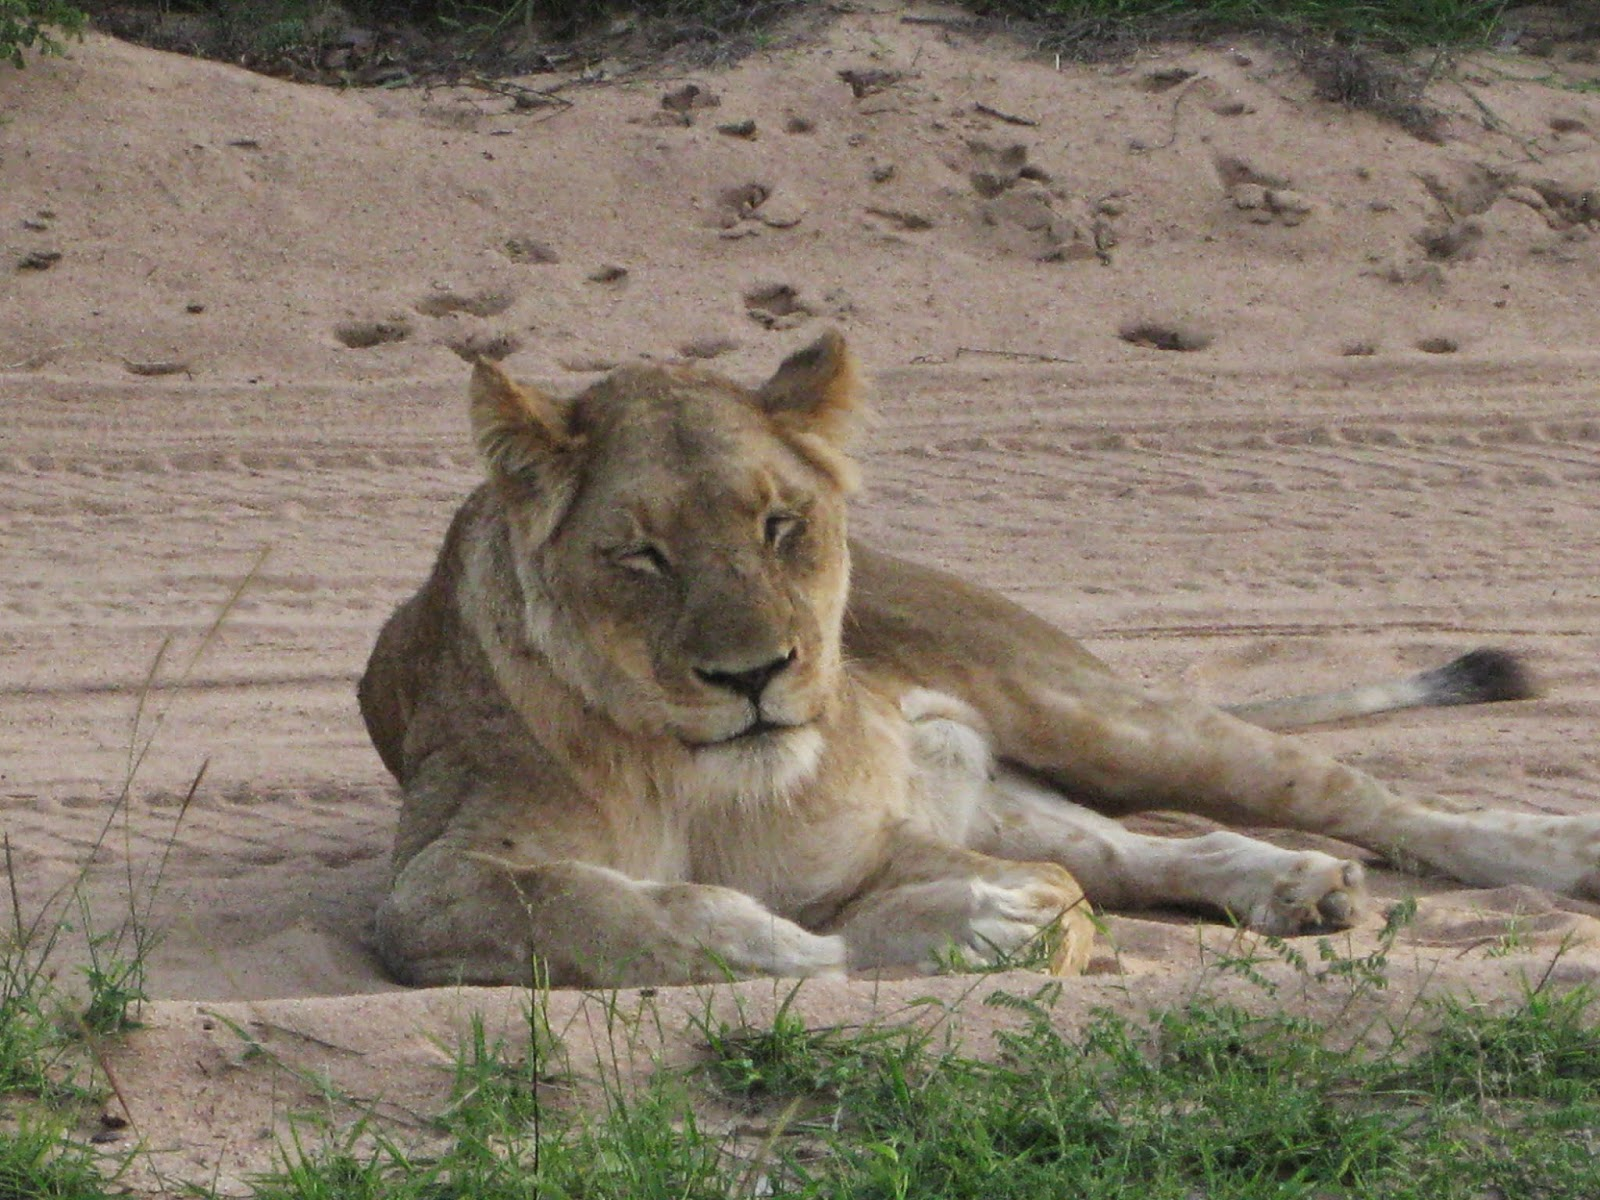 Sabi Sands - A lioness rests and calls out to her cubs